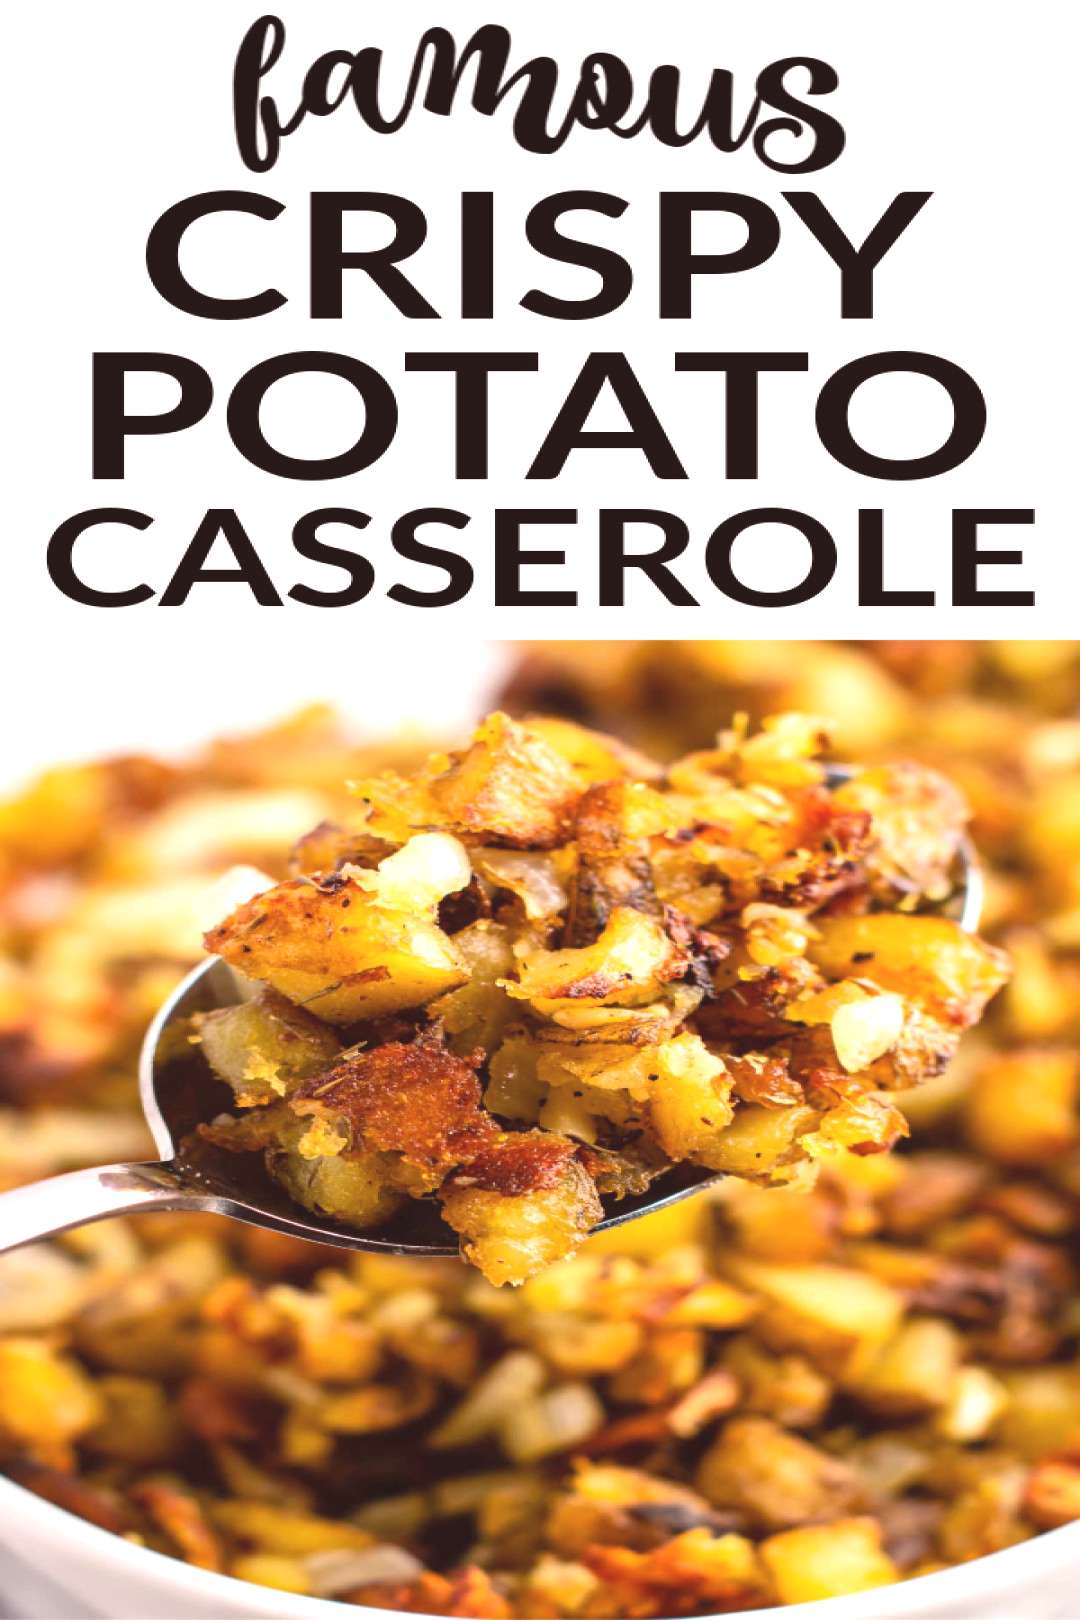 Everyone goes crazy for the best side dish ever - this super crispy potato casserole with carameliz